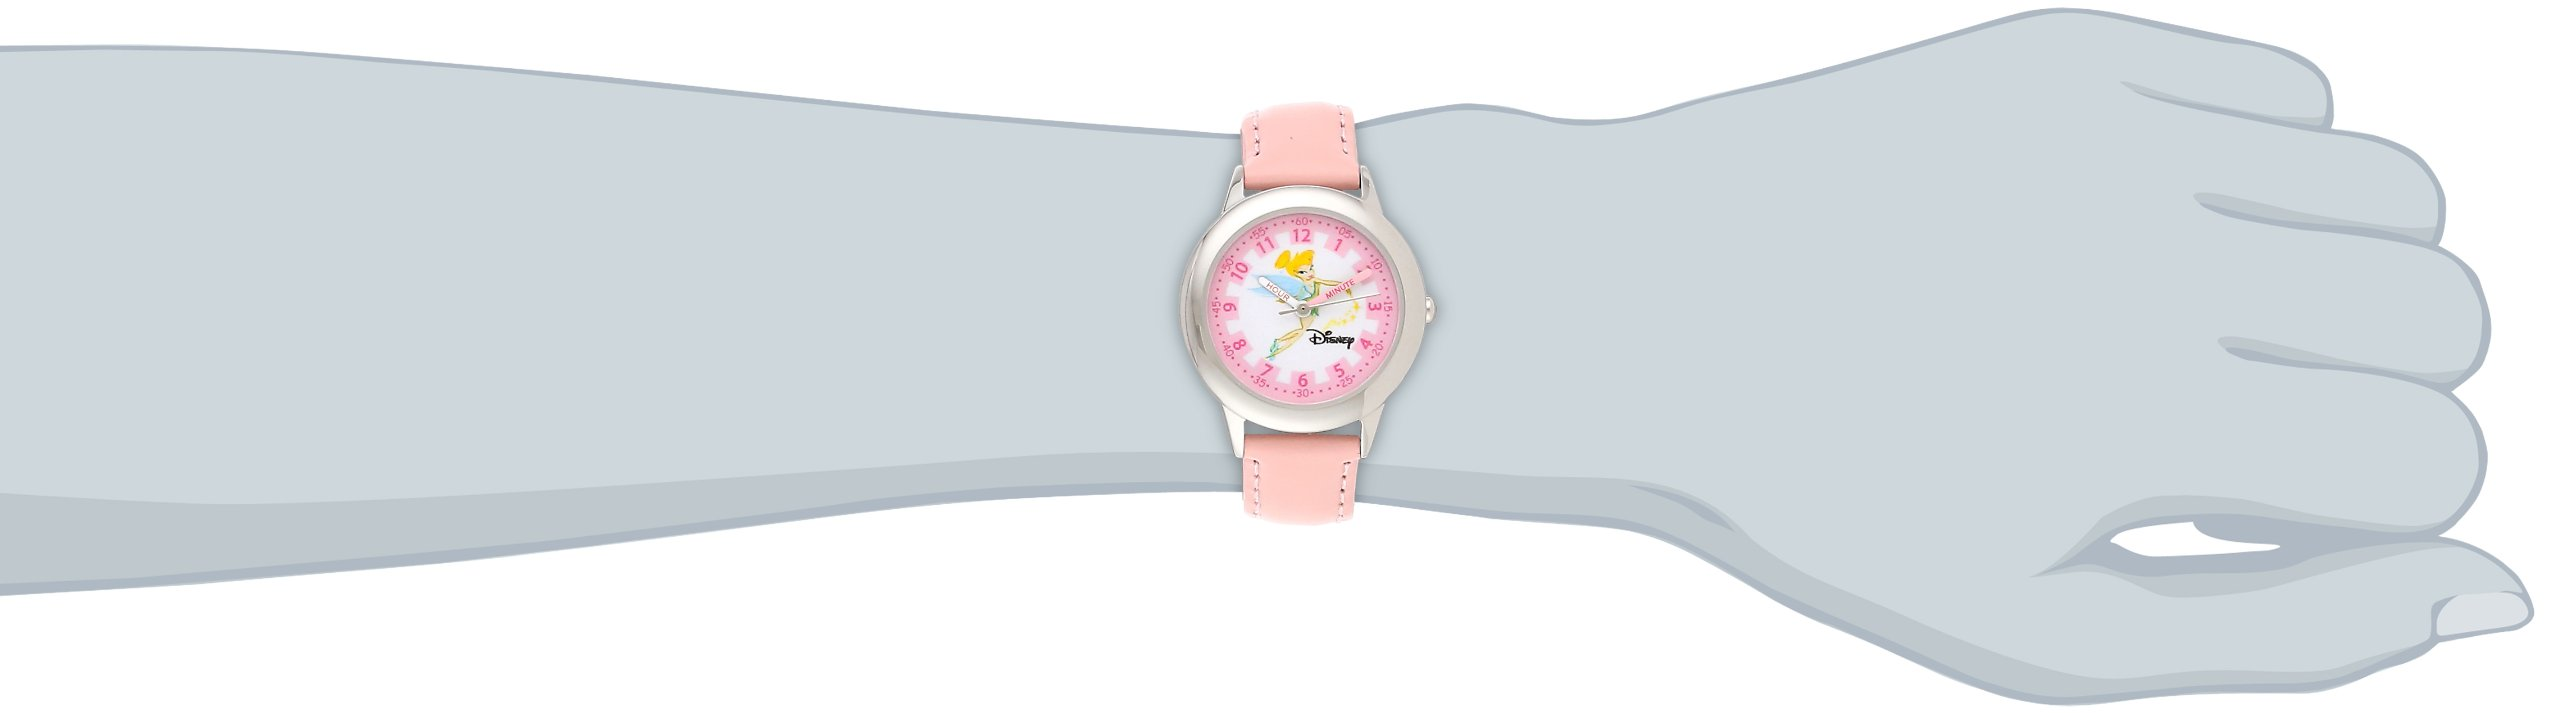 Disney Kids' W000074 ''Tinker Bell Time Teacher'' Stainless Steel Watch with Pink Leather Band by Disney (Image #2)